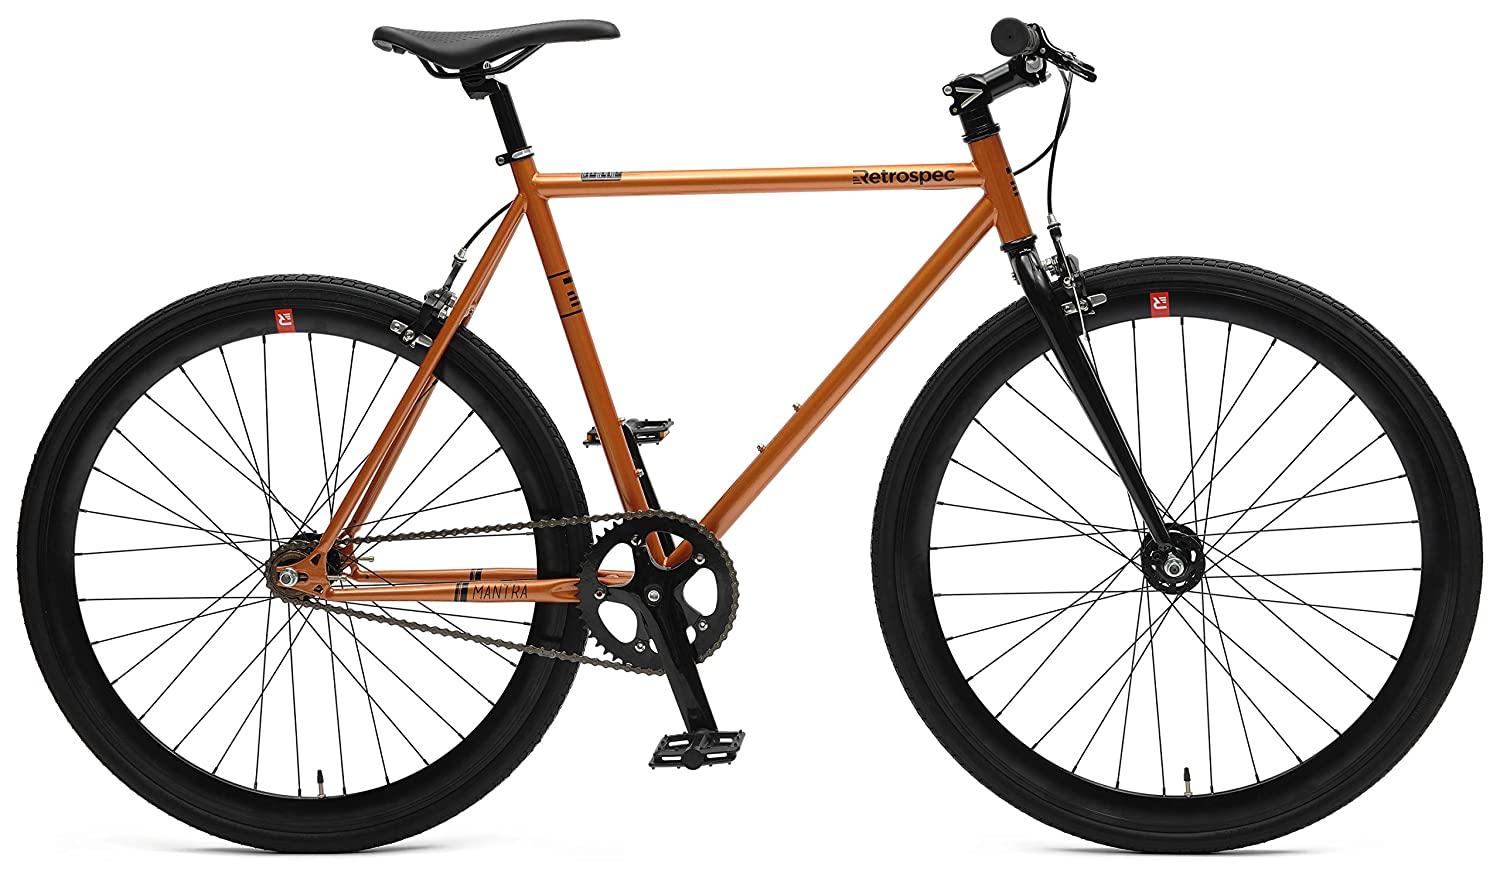 Retrospec Mantra V2 Urban Commuter Bike Best Budget Touring Bike